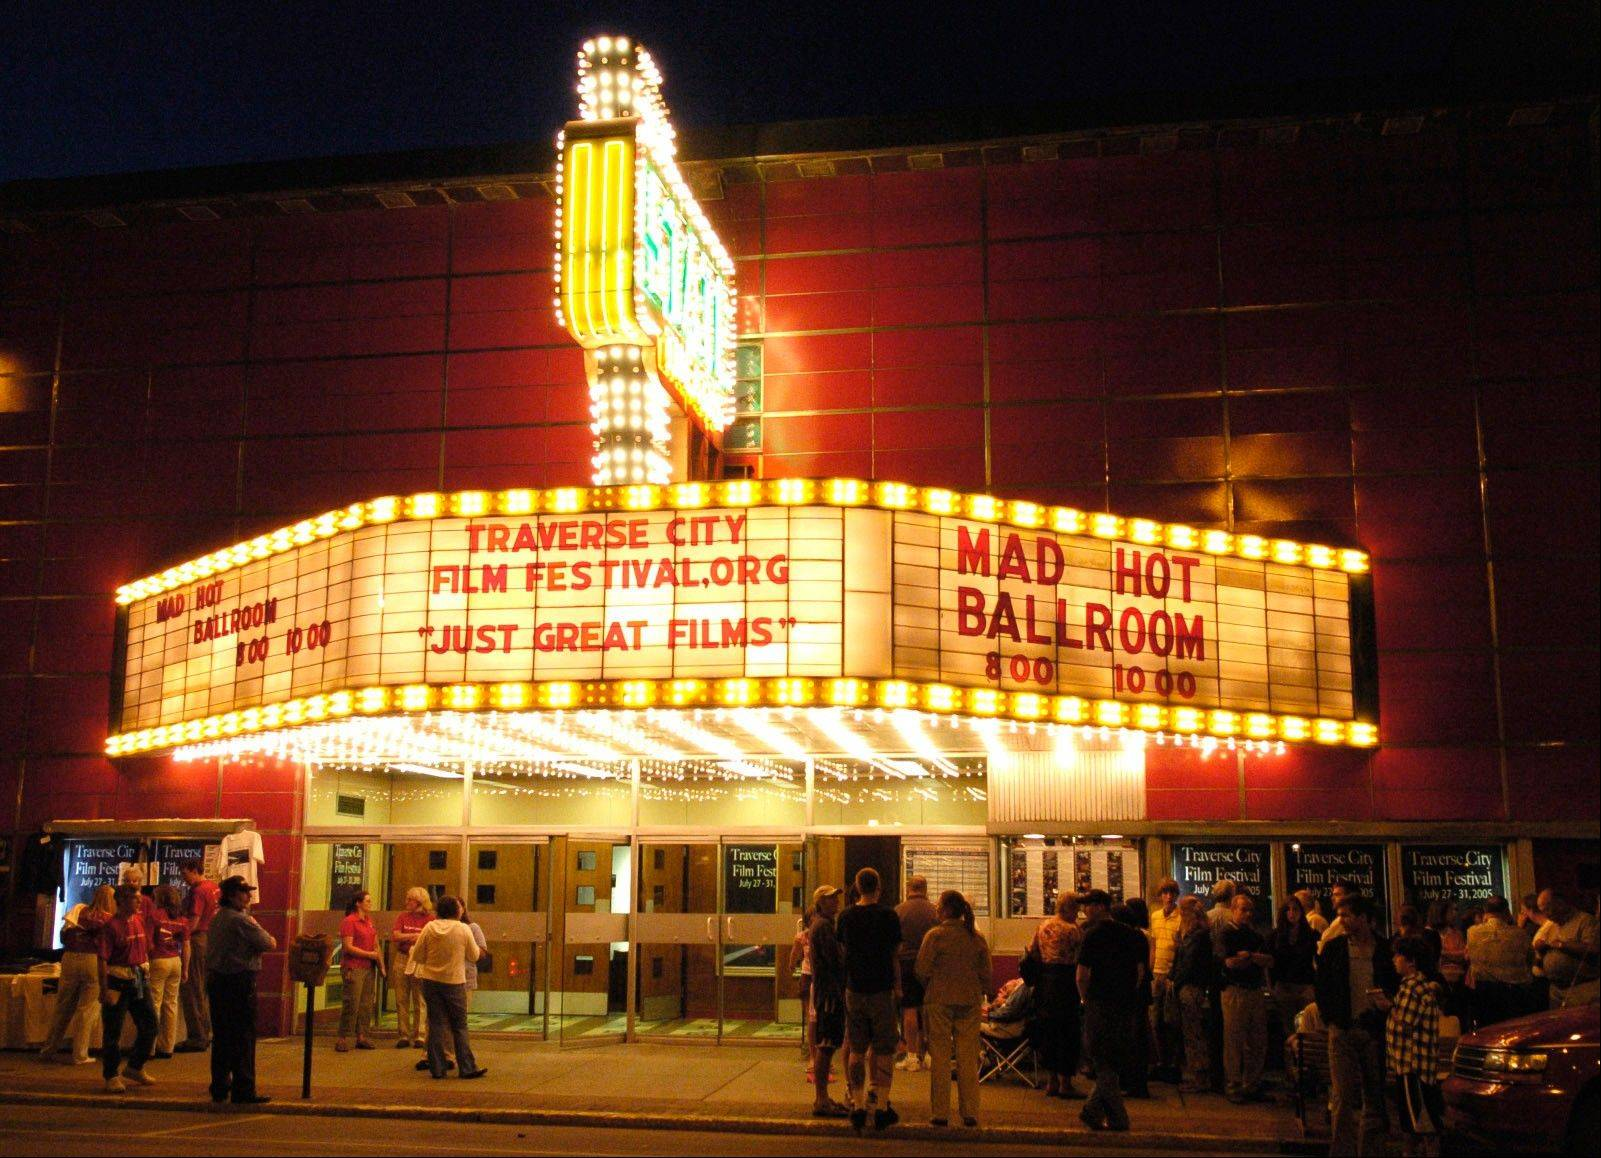 The inaugural Traverse City Film Festival is held in the renovated State Theatre in downtown Traverse City, Mich. The Traverse City Film Festival, co-founded by filmmaker and Michigan native Michael Moore, runs from July 30 to Aug. 4.